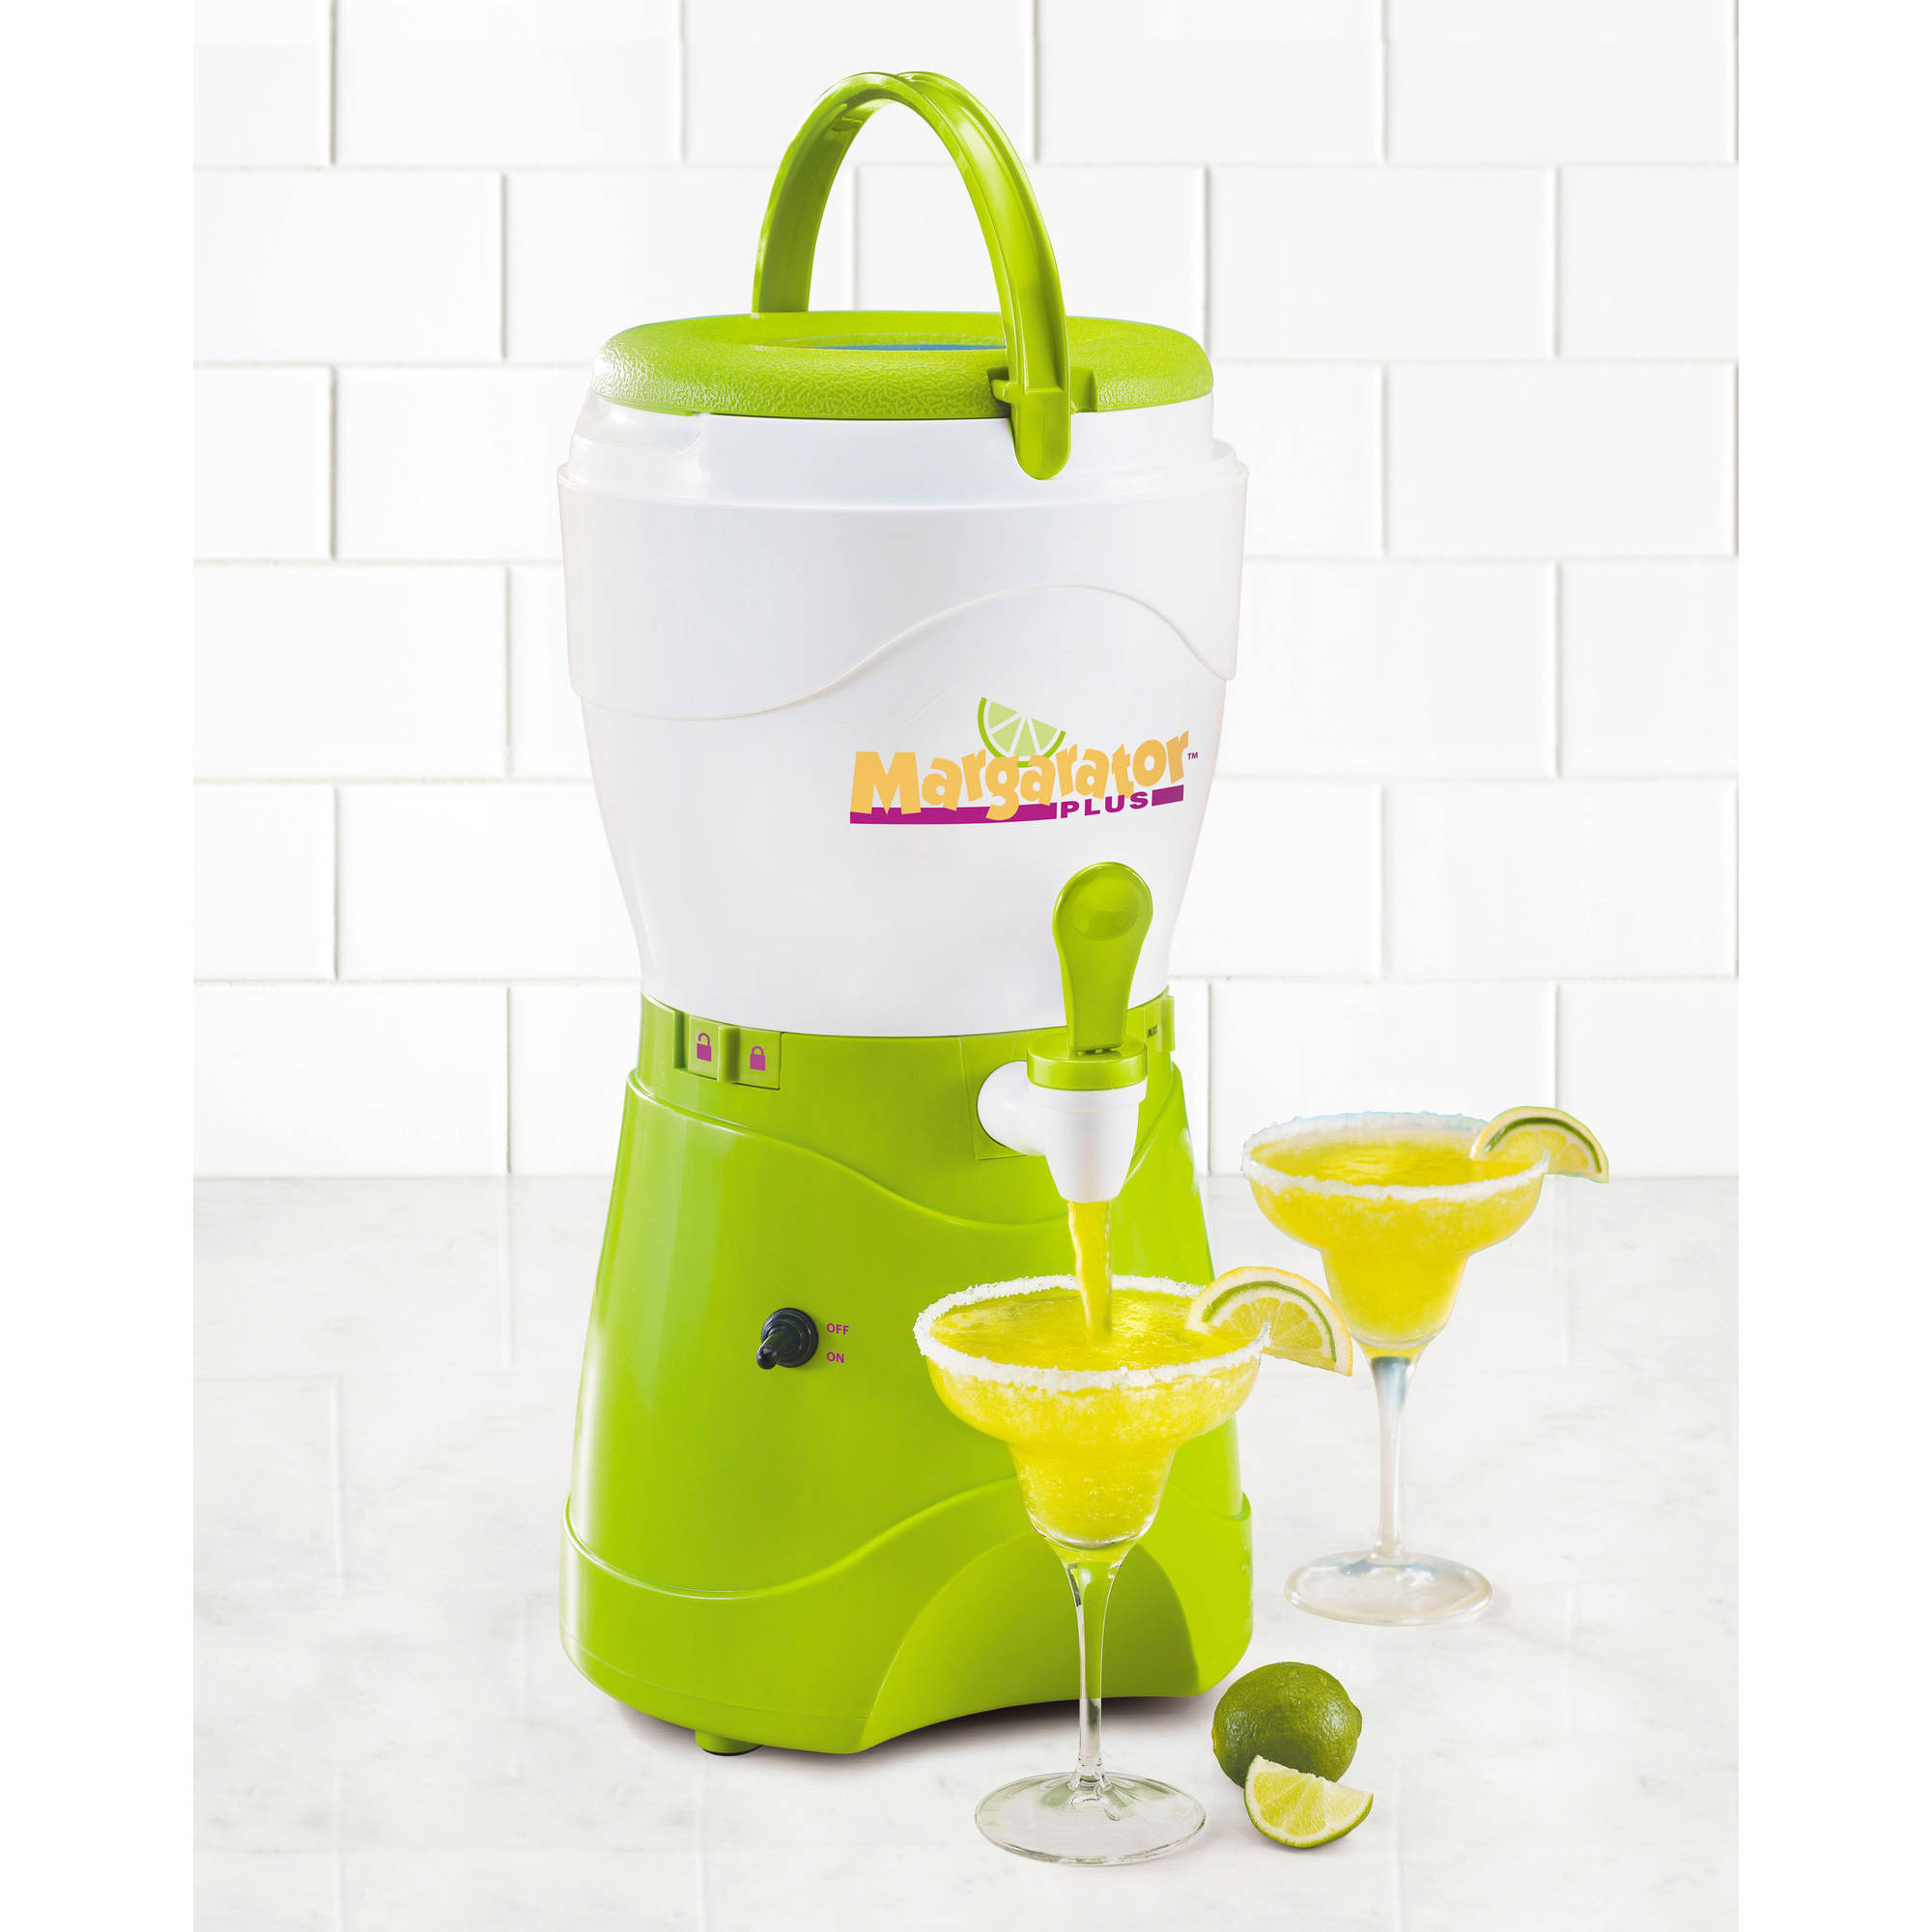 Nostalgia MSB600 1-Gallon Margarator Plus Margarita and Slush Maker